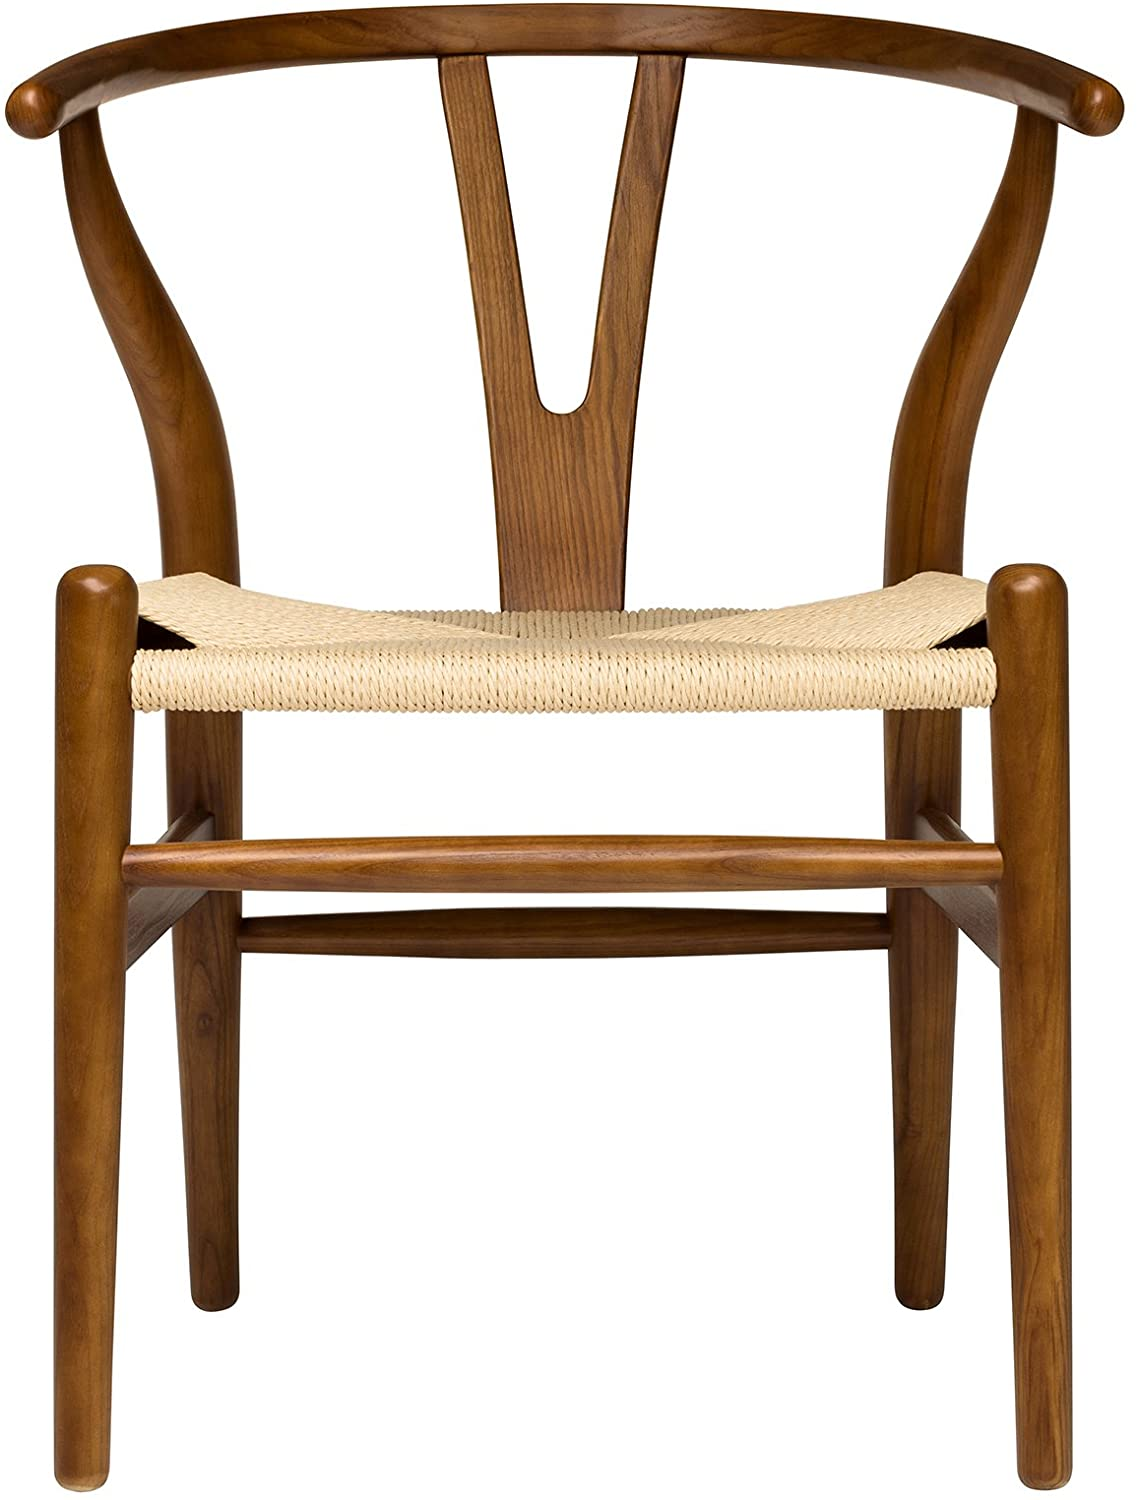 Hans Wegner Wishbone Style Woven Seat Chair (Walnut with Natural Cord)